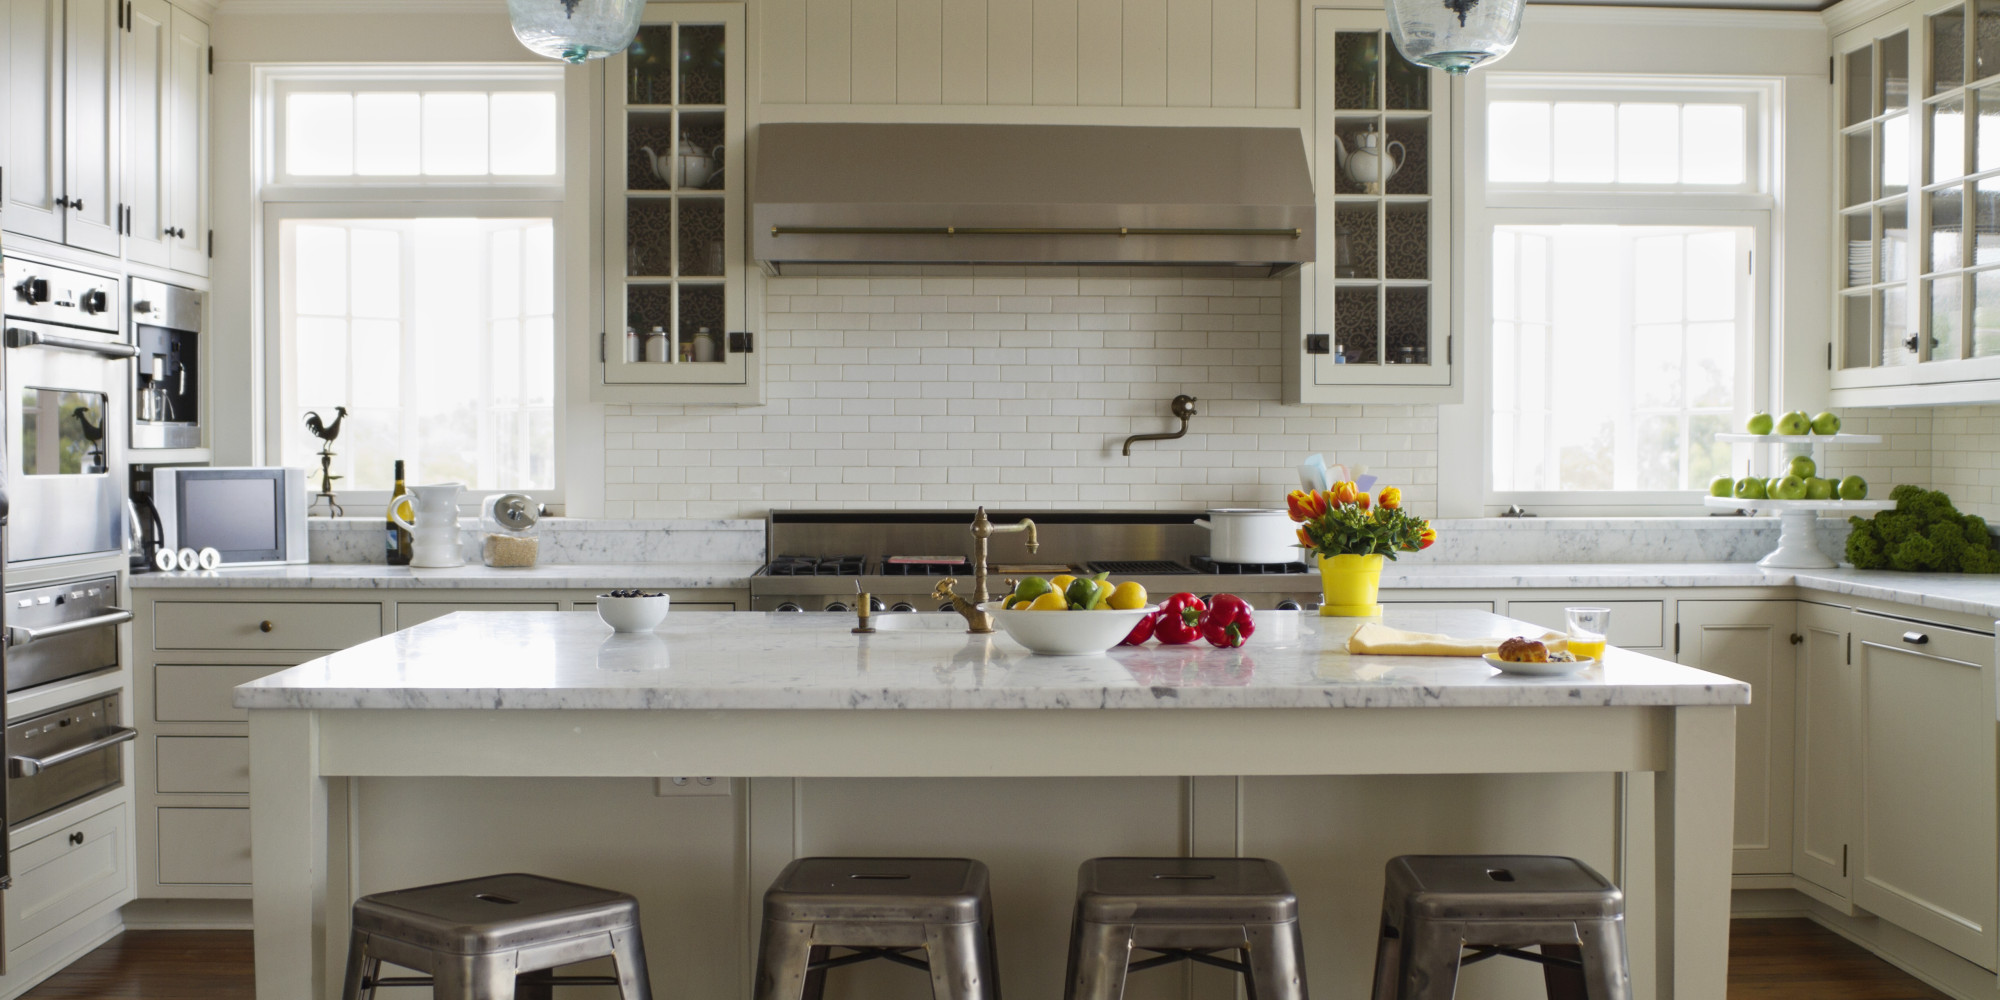 Uncategorized 2014 Kitchen Design Trends kitchen cabinet color trends the 3 biggest of 2014 might surprise you photos the